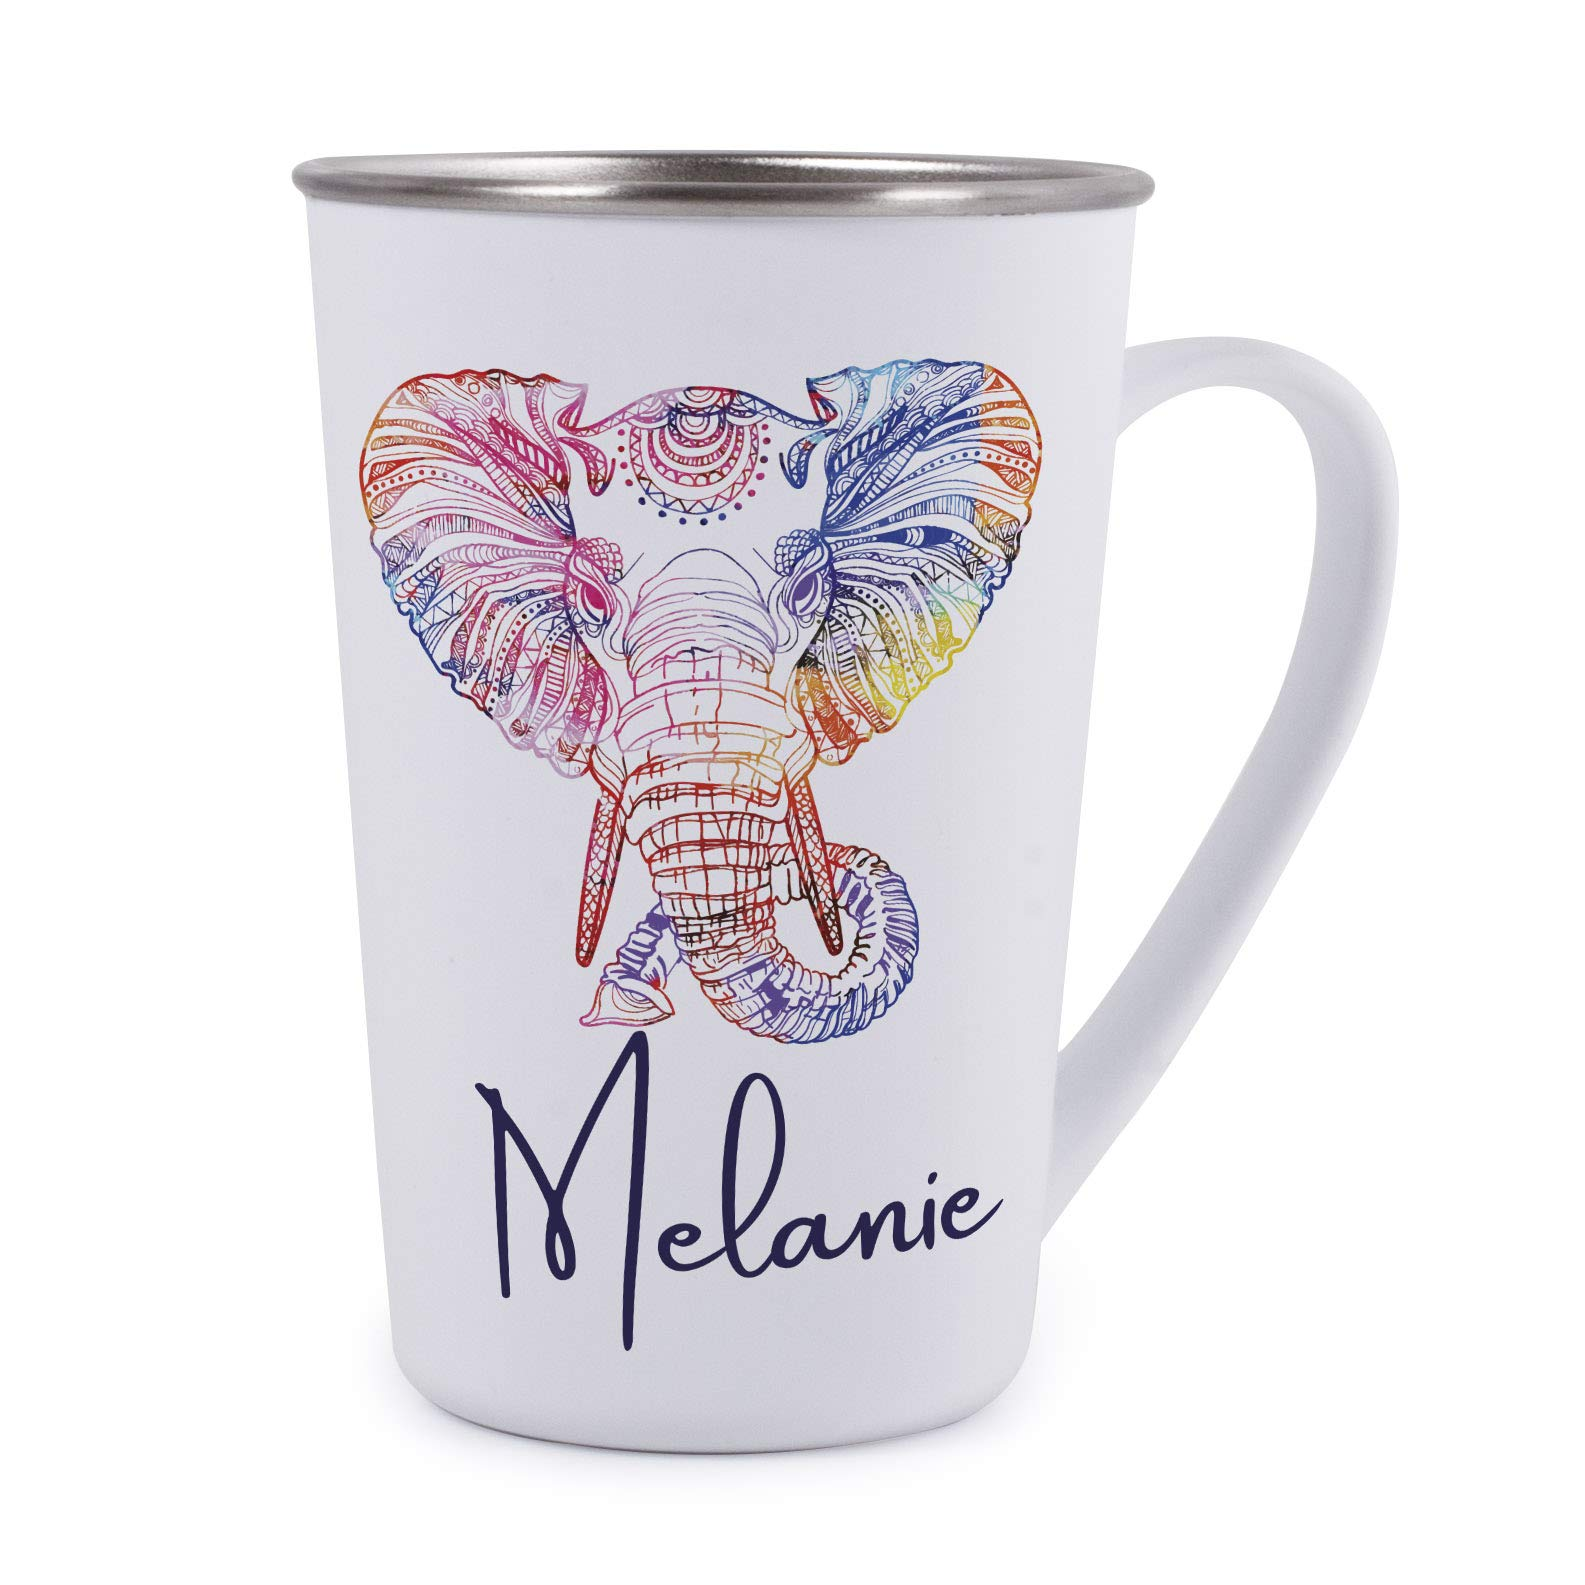 Personalized Gifts Colorful Elephant Coffee Mug - 17oz Stainless Steel Tumbler Coffee Mug -Birthday Gifts, Christmas Gifts, Mother's Day Gifts, Father's Day Gifts, Funny Mug for Kids by USA Custom Gifts (Image #1)